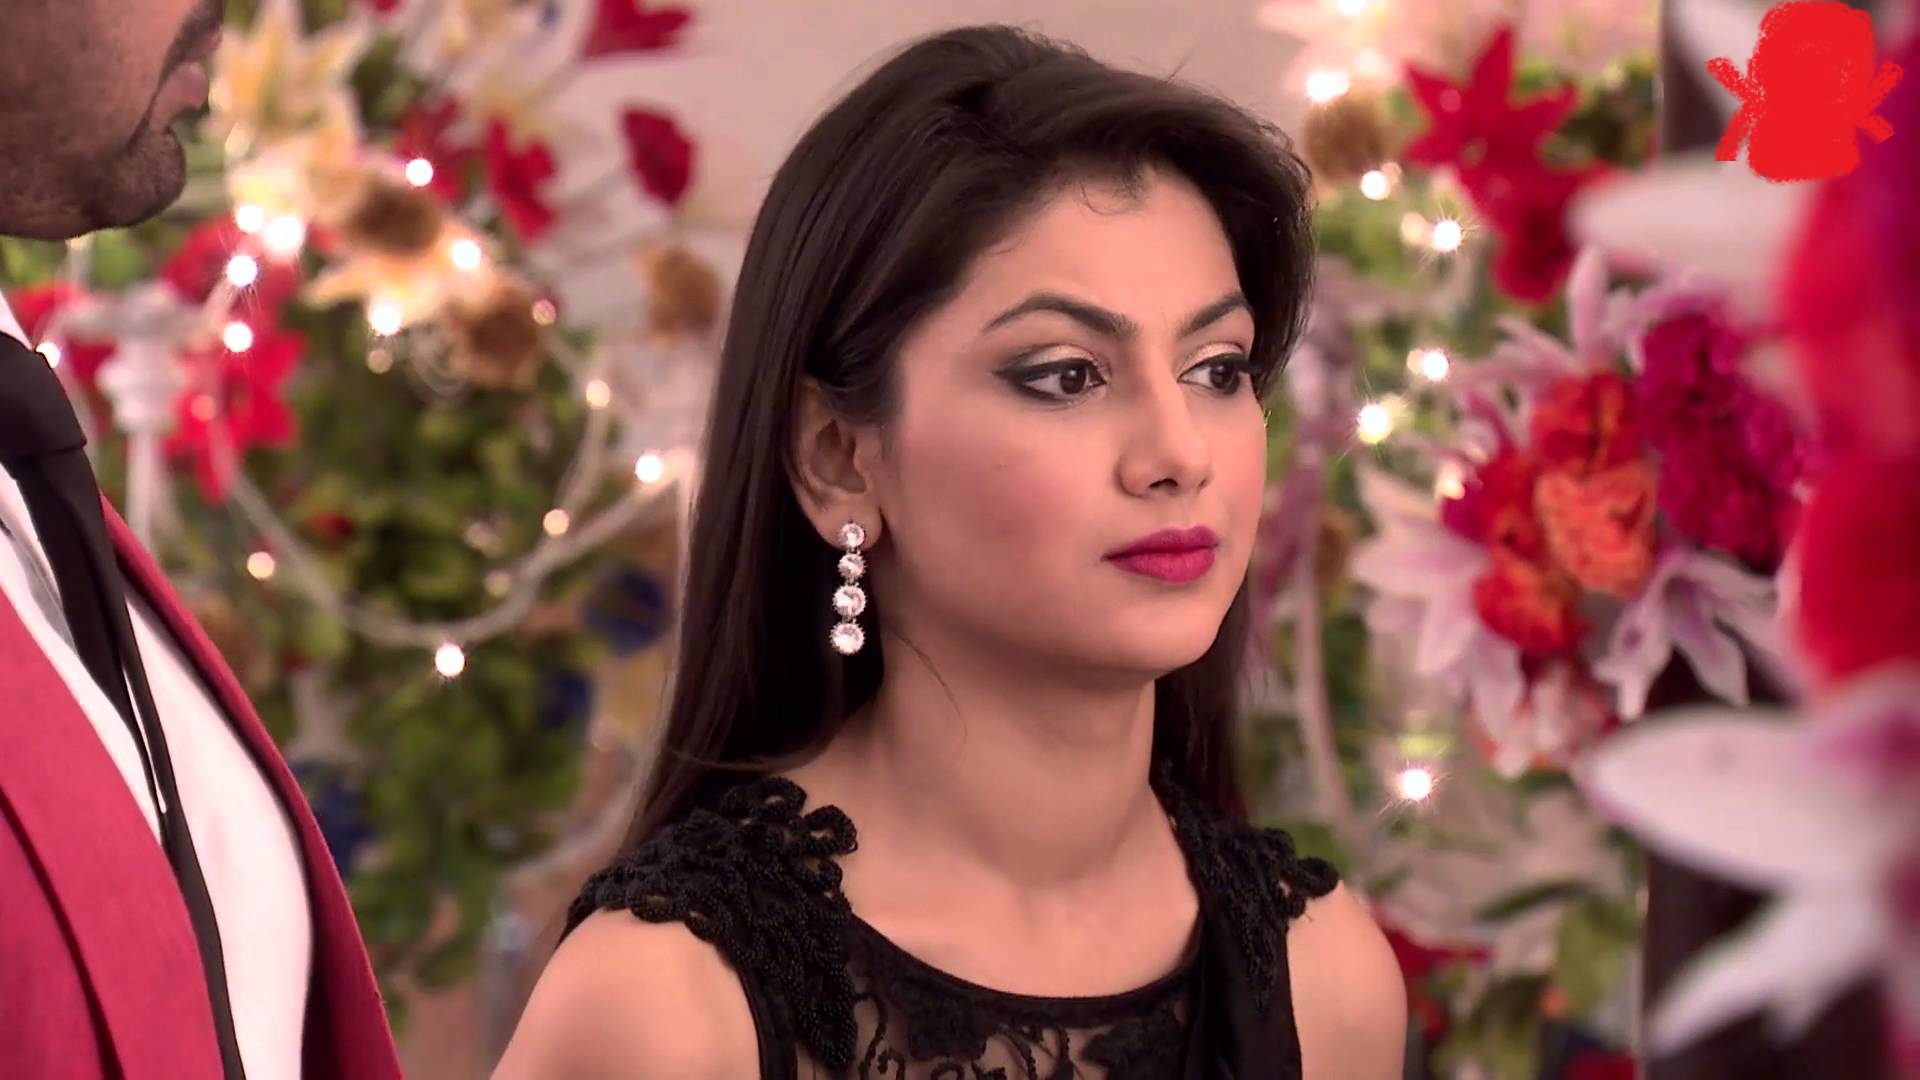 Kumkum bhagya serial images hd